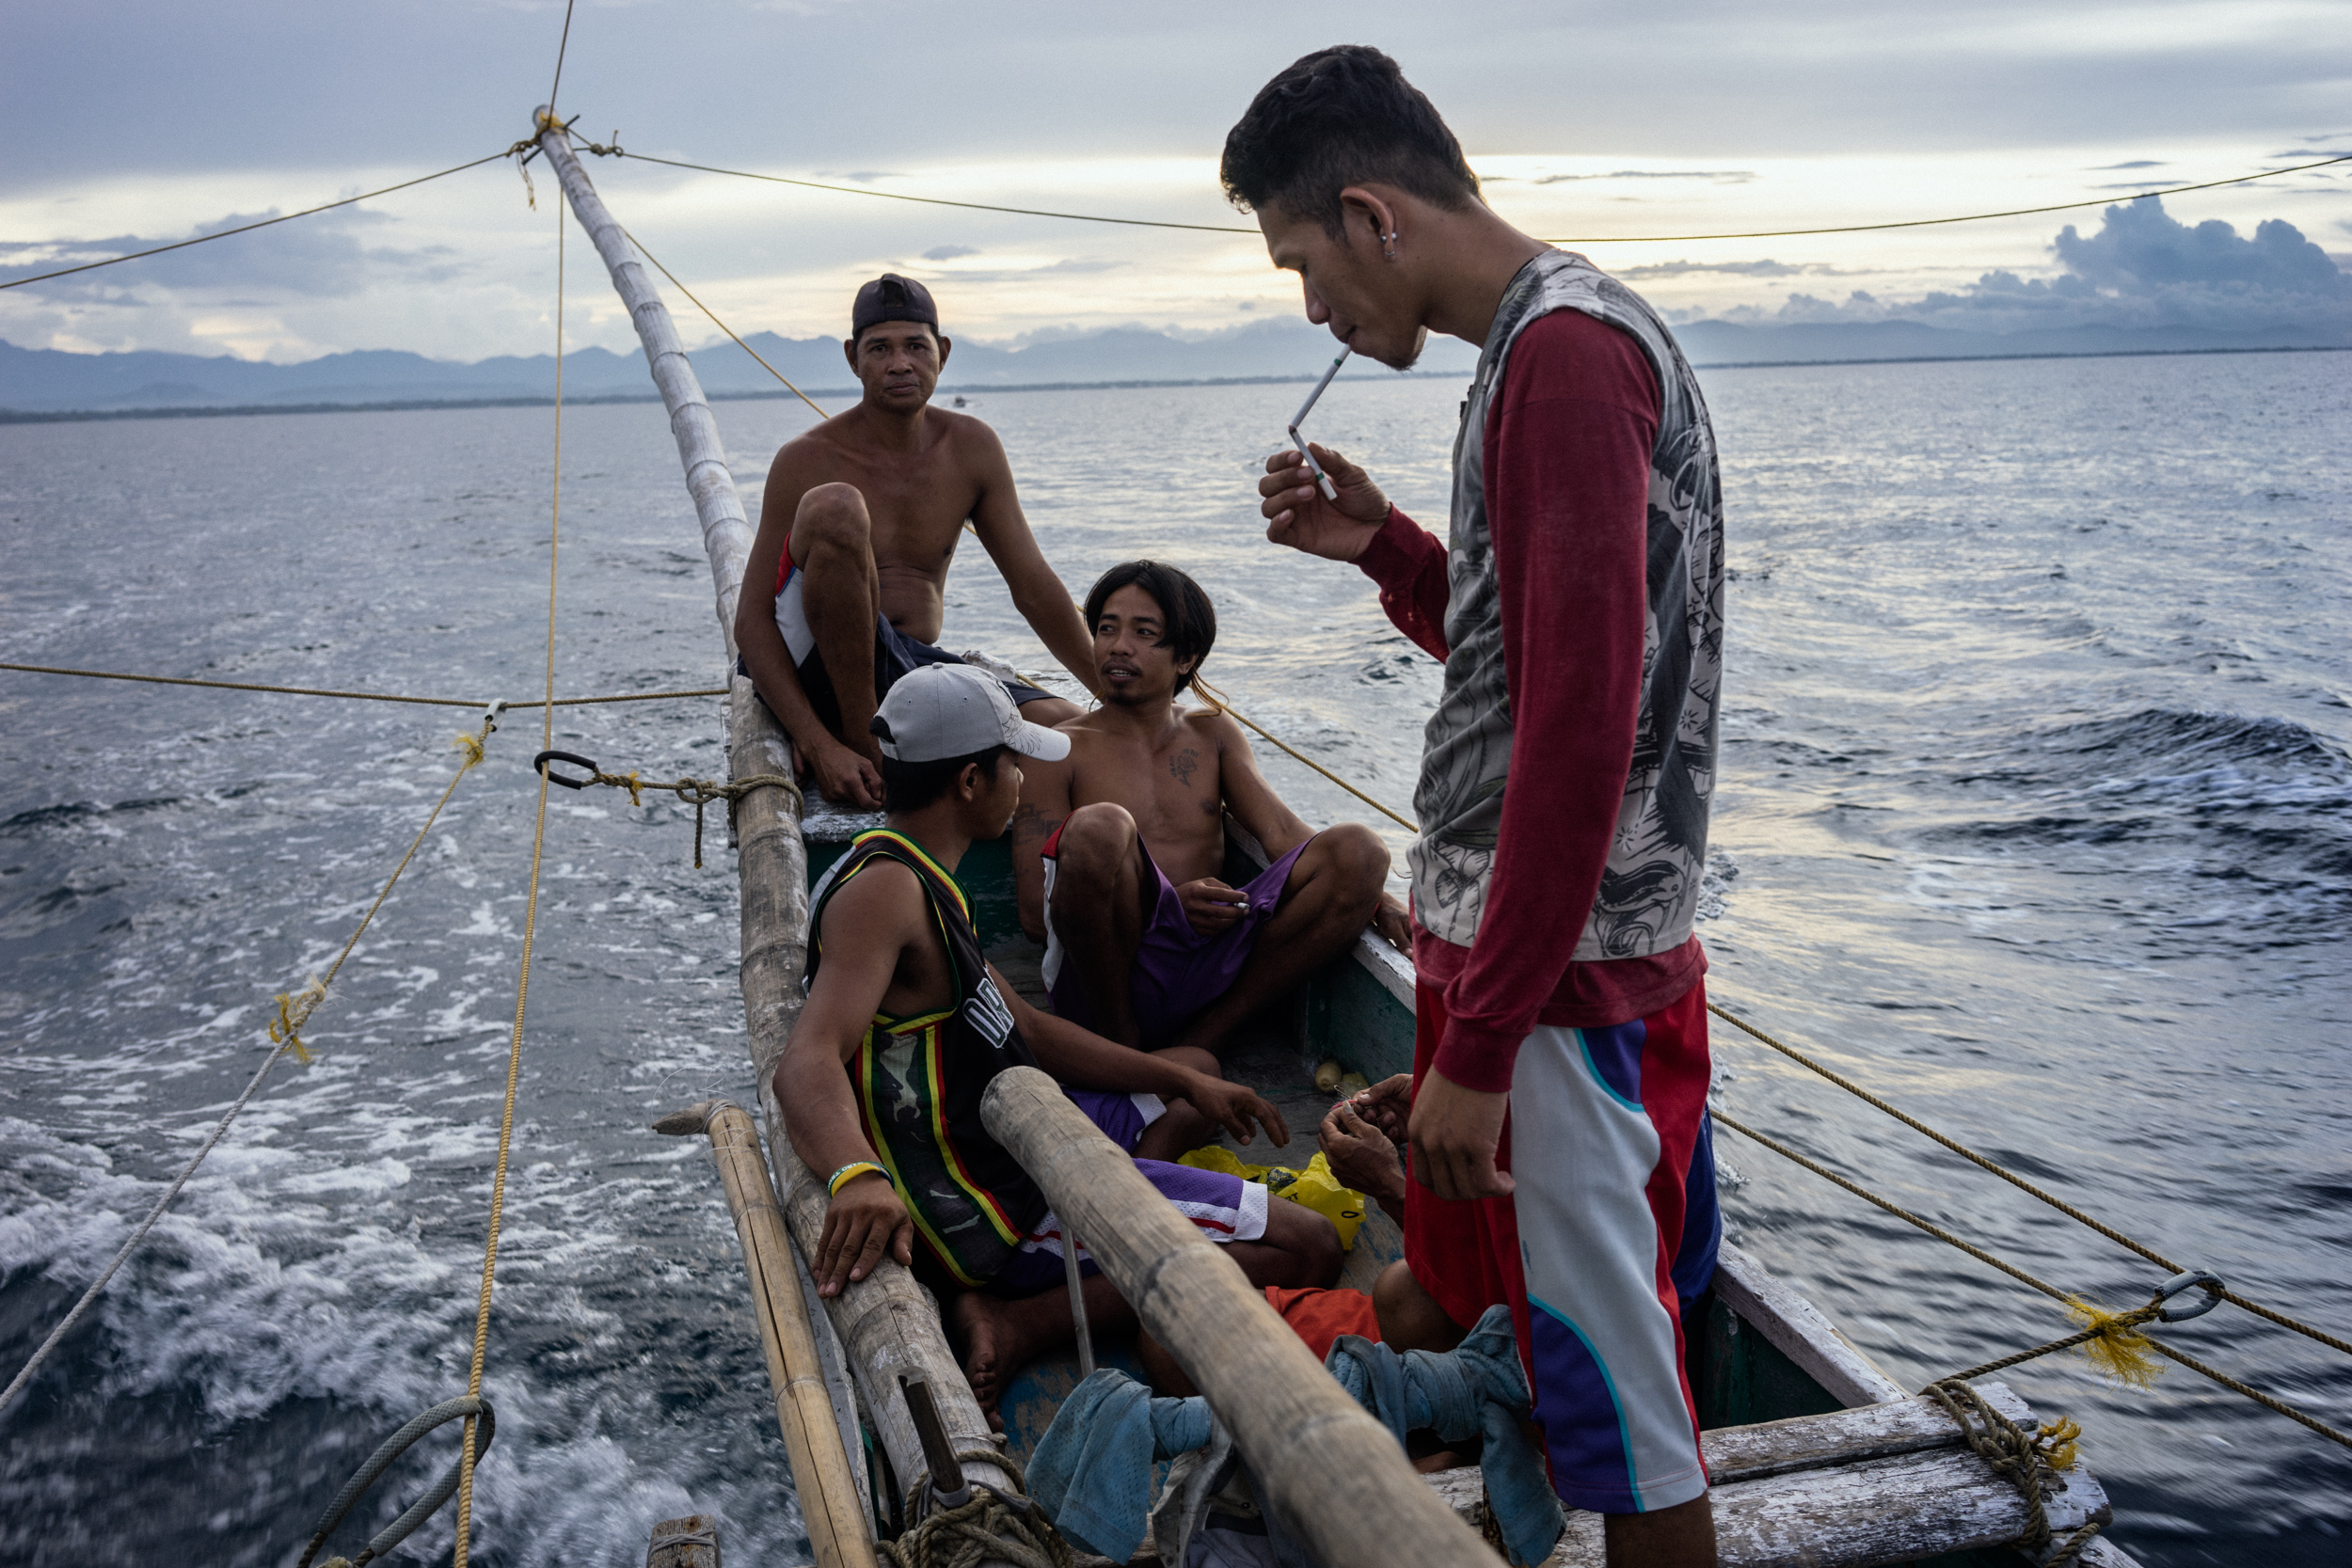 Kalibo, Philippines - September 21, 2015: The crew of a local fishing boat heads out for their night's catch. Members of the crew, who make approximately 35 USD per month, have expressed their desire to work on a larger fishing vessel for the promise of a higher income despite stories of fellow fishermen about the forms of abuse that happen on such vessels. / Hannah Reyes Morales